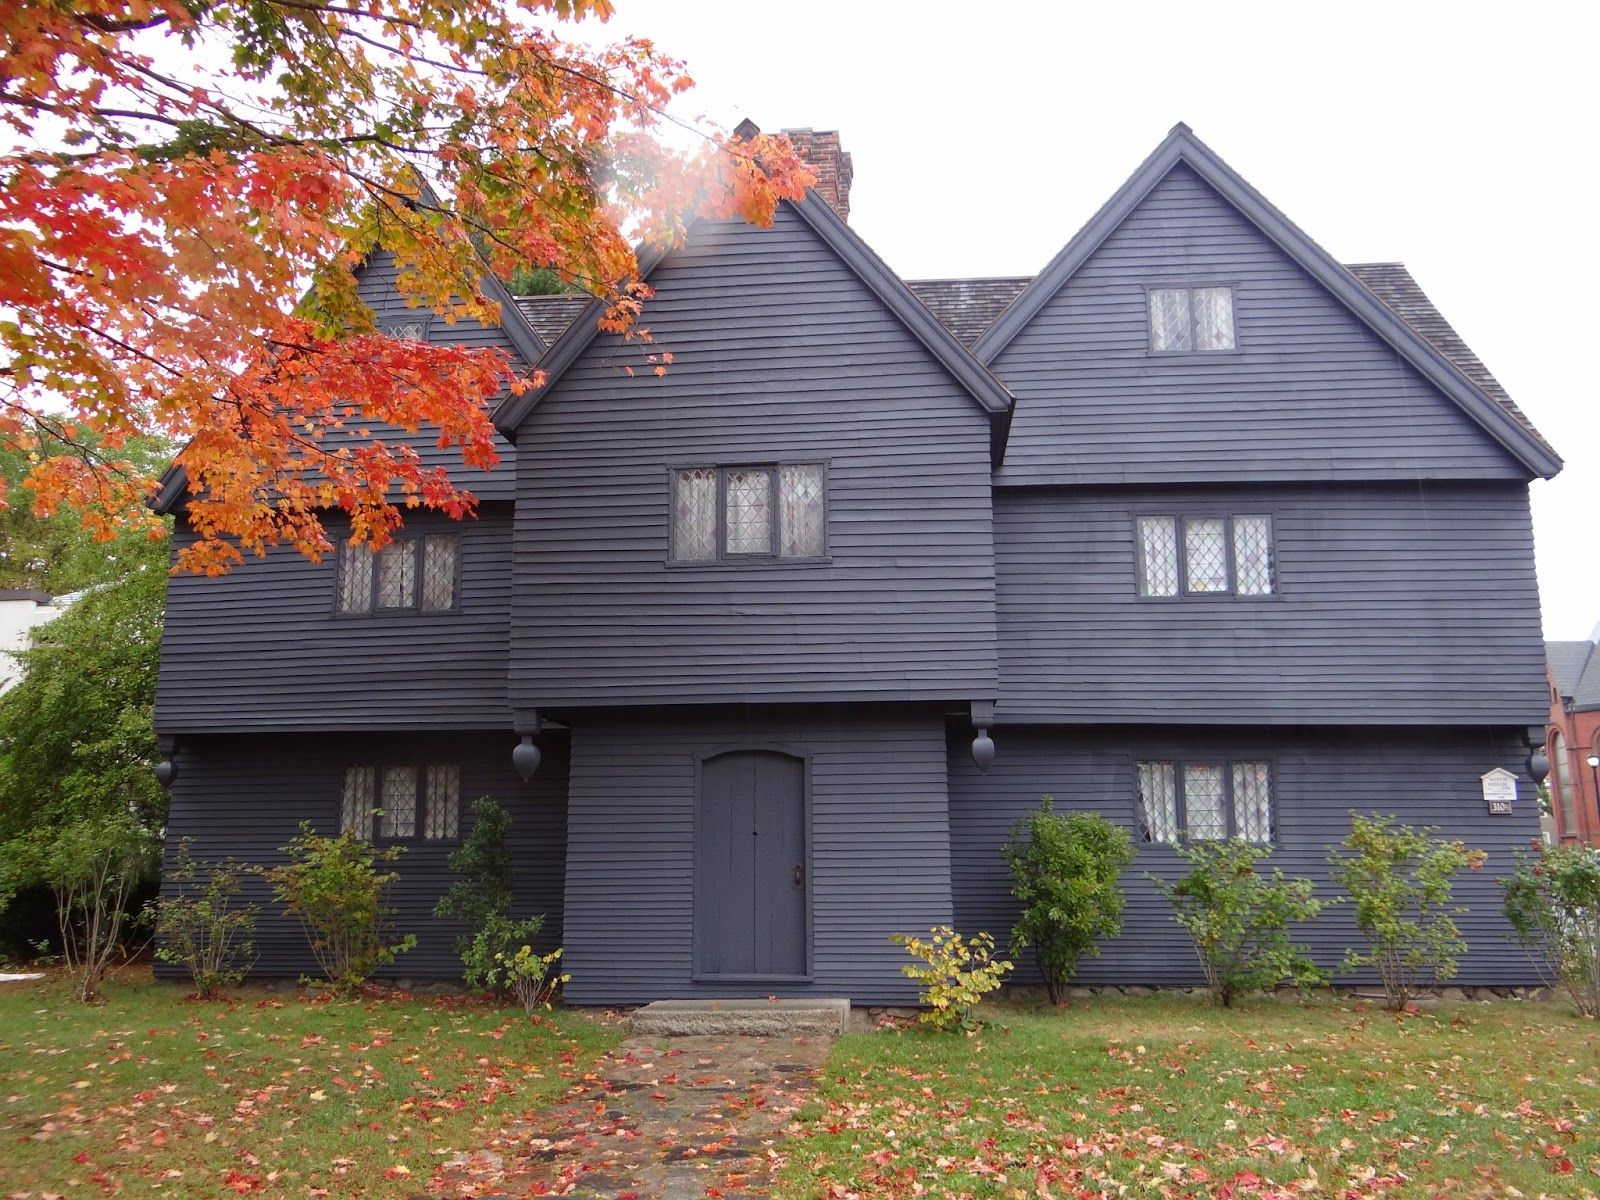 Season of the Witch (With images) | Massachusetts travel ...